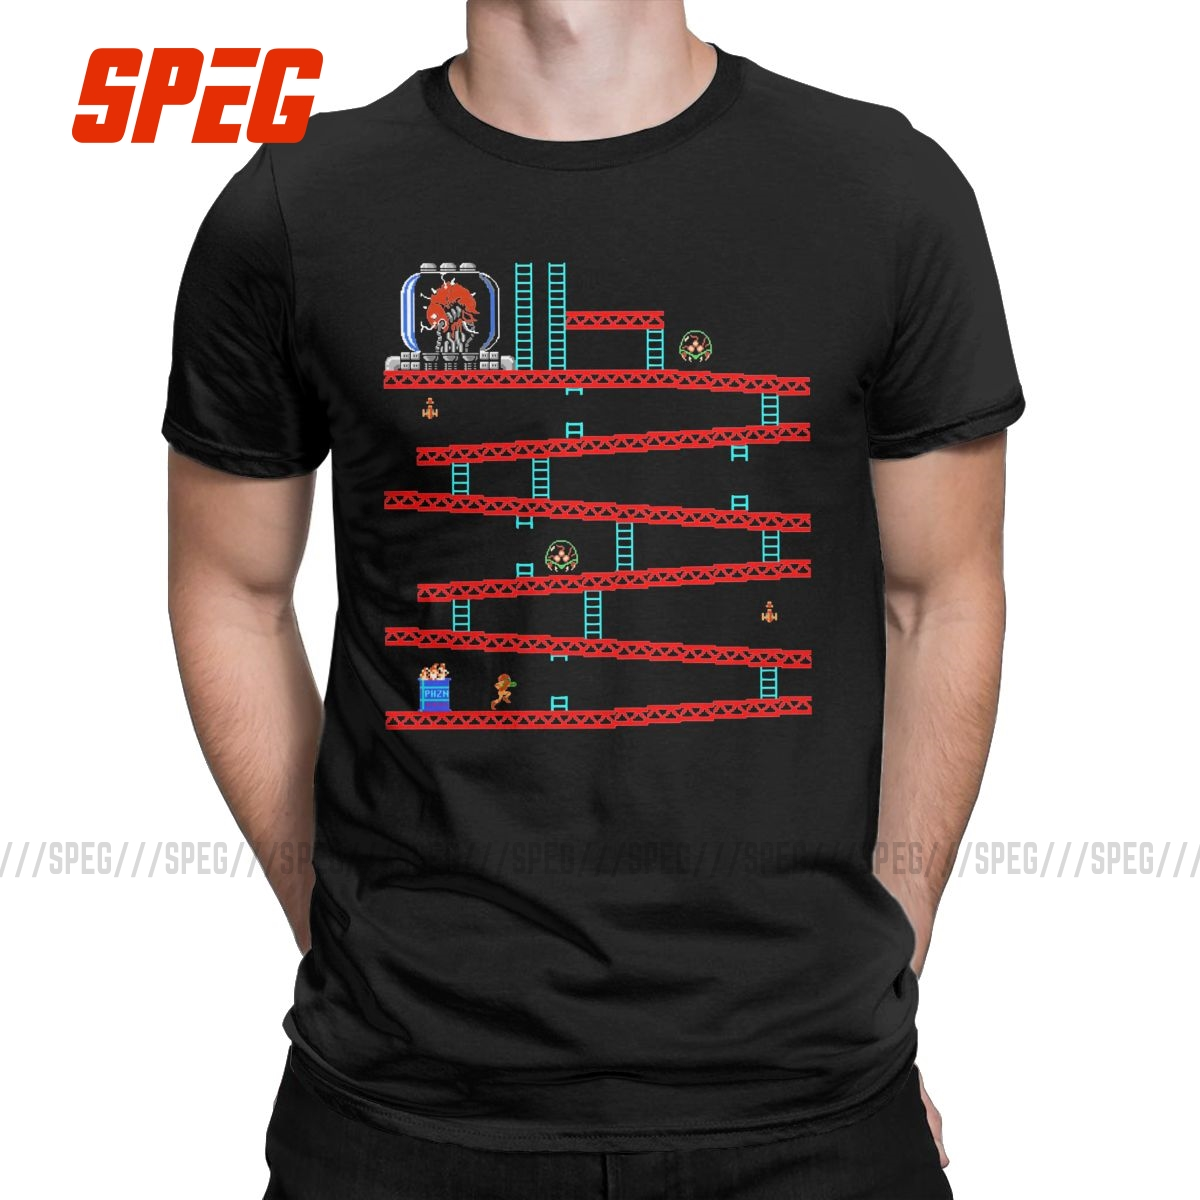 Leisure Metroid Kong Games T-Shirt for Men Round Collar Pure Cotton T Shirt Donkey Kong Short Sleeve Tees Gift Idea Clothing image